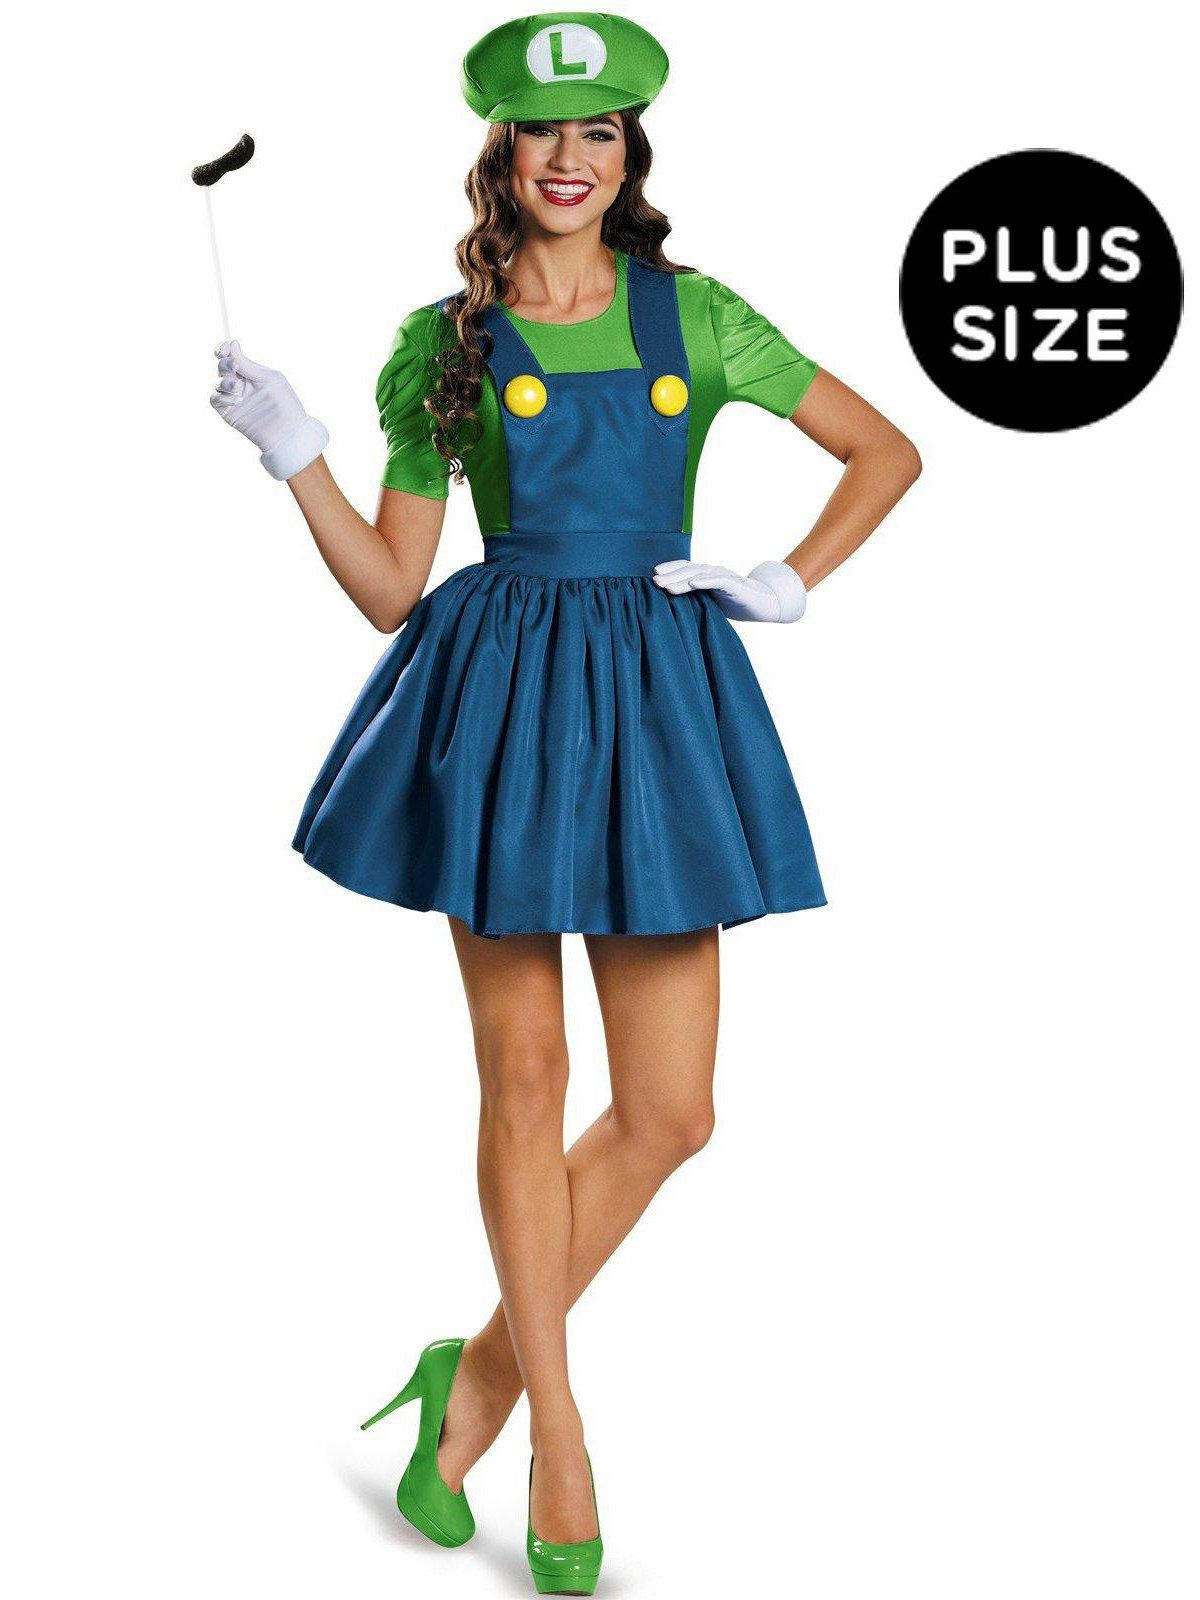 Plus Size Super Mario Luigi Costume With Skirt For Women  sc 1 st  Wholesale Halloween Costumes & Plus Size Super Mario: Luigi Costume With Skirt For Women - Womens ...